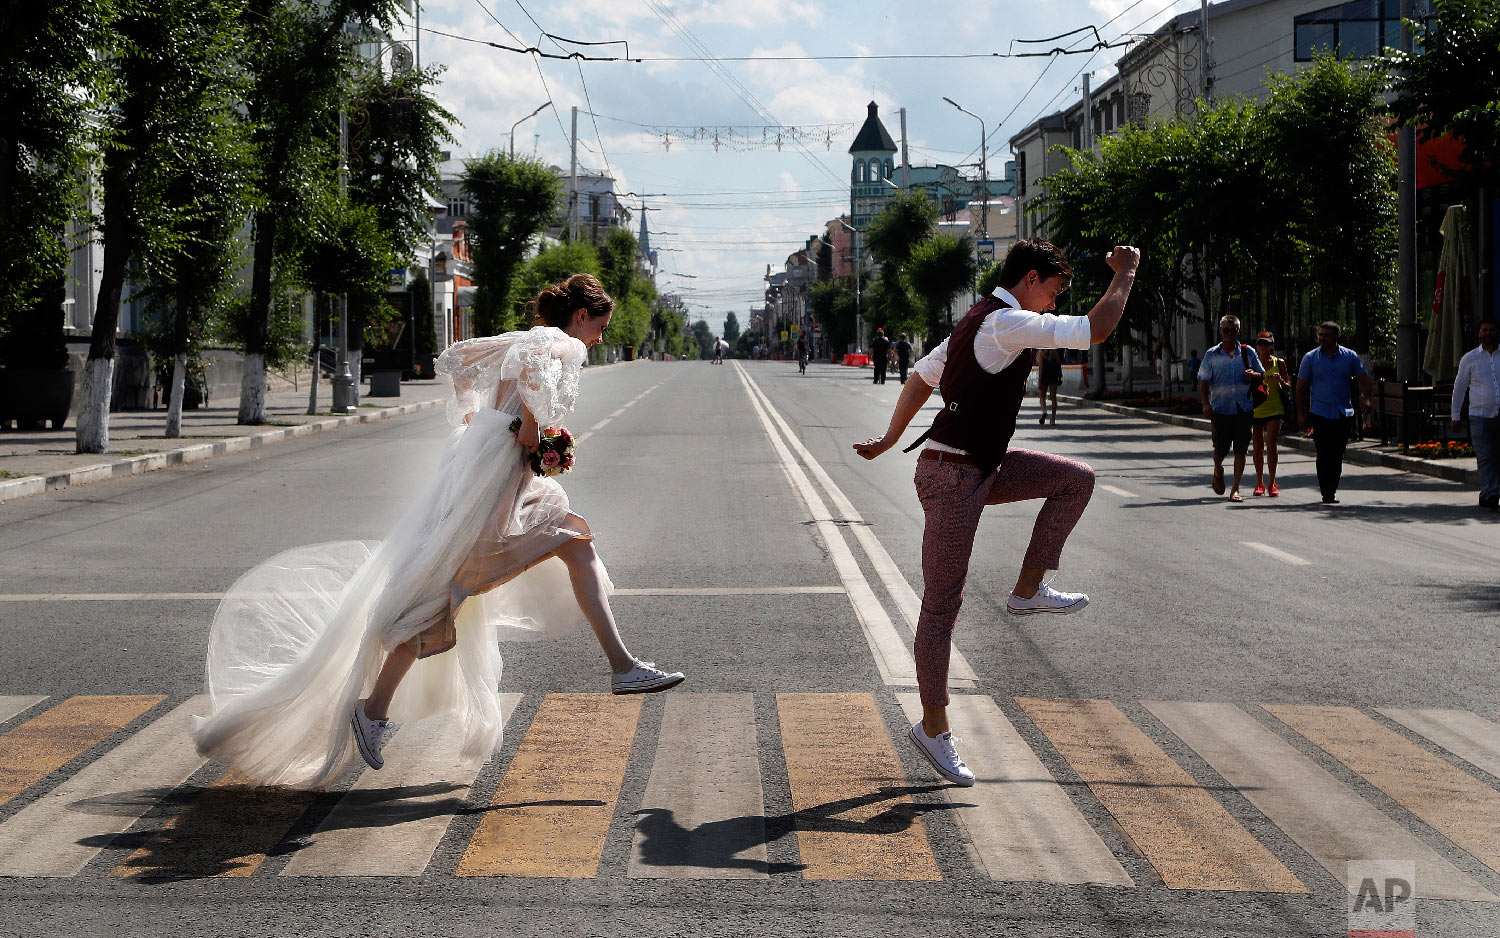 Newlyweds pose on a zebra crossing for wedding photographers during the 2018 soccer World Cup in Samara, Russia on Sunday, July 8, 2018. (AP Photo/Frank Augstein)